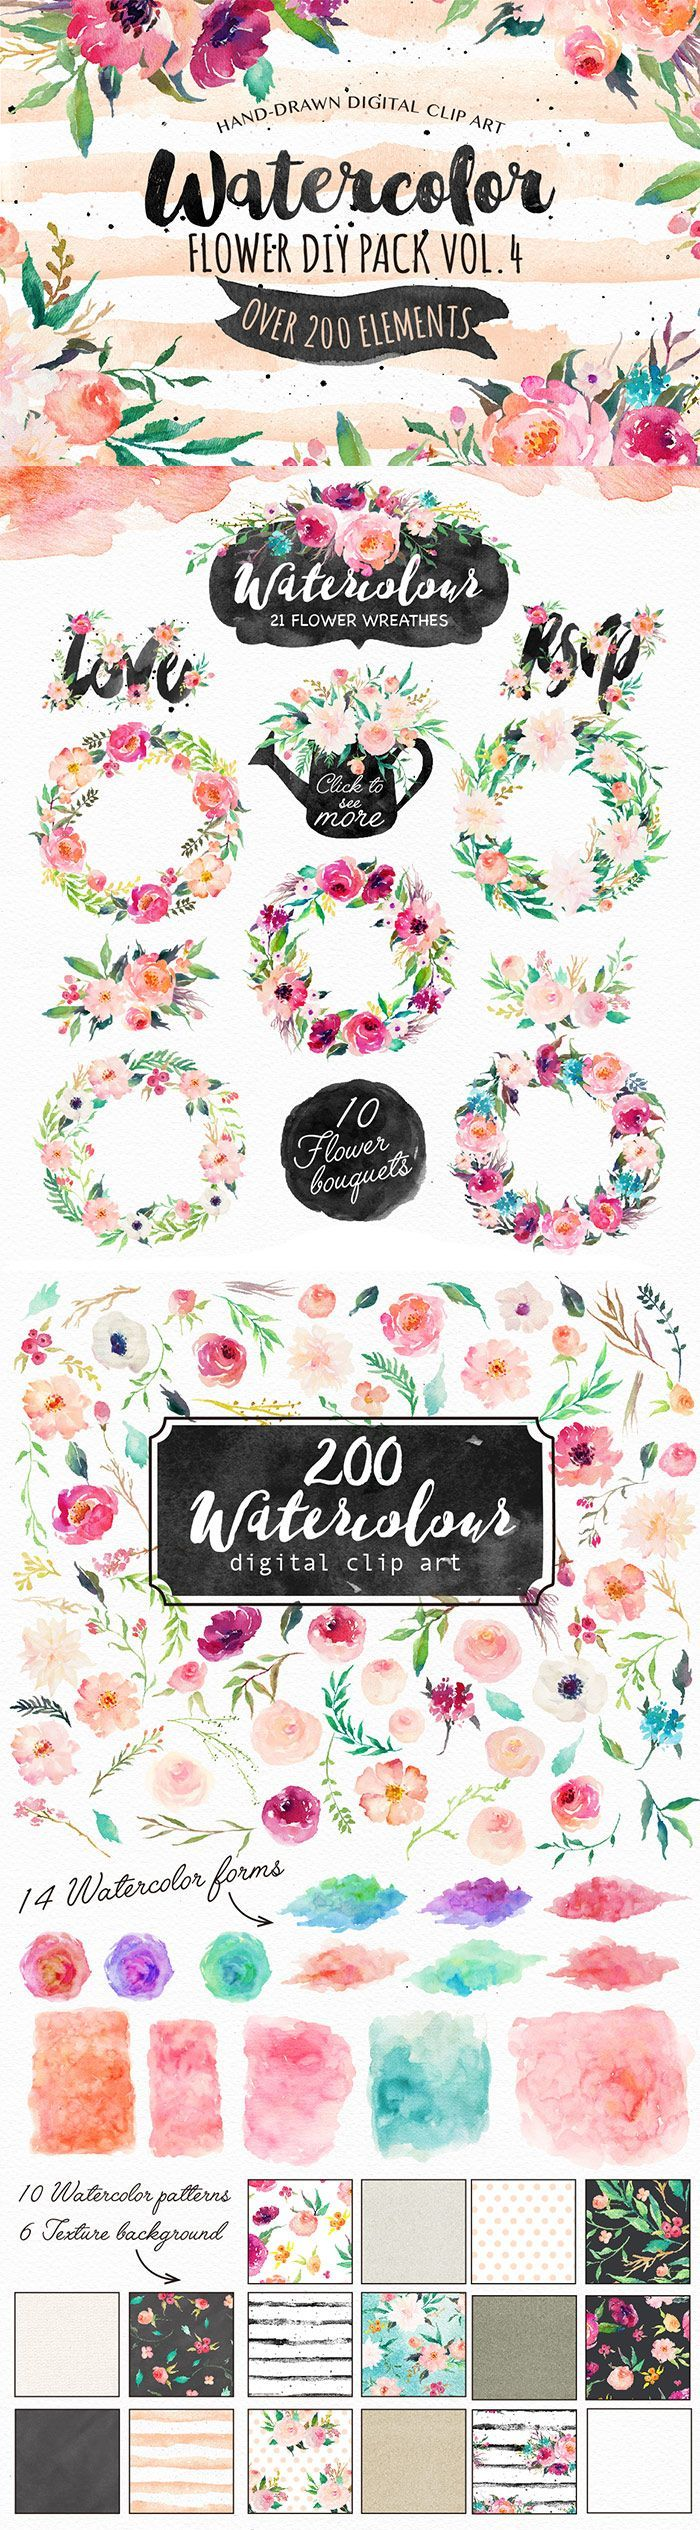 This is a big watercolor collection containing over 200 graphic elements. Includes: florals, floral wreathes, floral bouquets, leaves, ribbon, branches, grass, watercolor forms, catchwords, texture background, seamless patterns, frames, logos, ornaments. Can be used for various purposes such as logos, wedding invitations, t-shirts, labels, badges, greetings, packaging, stationery, merchandise, posters, websites, digital presentations and more....you can DIY anything you want! :)